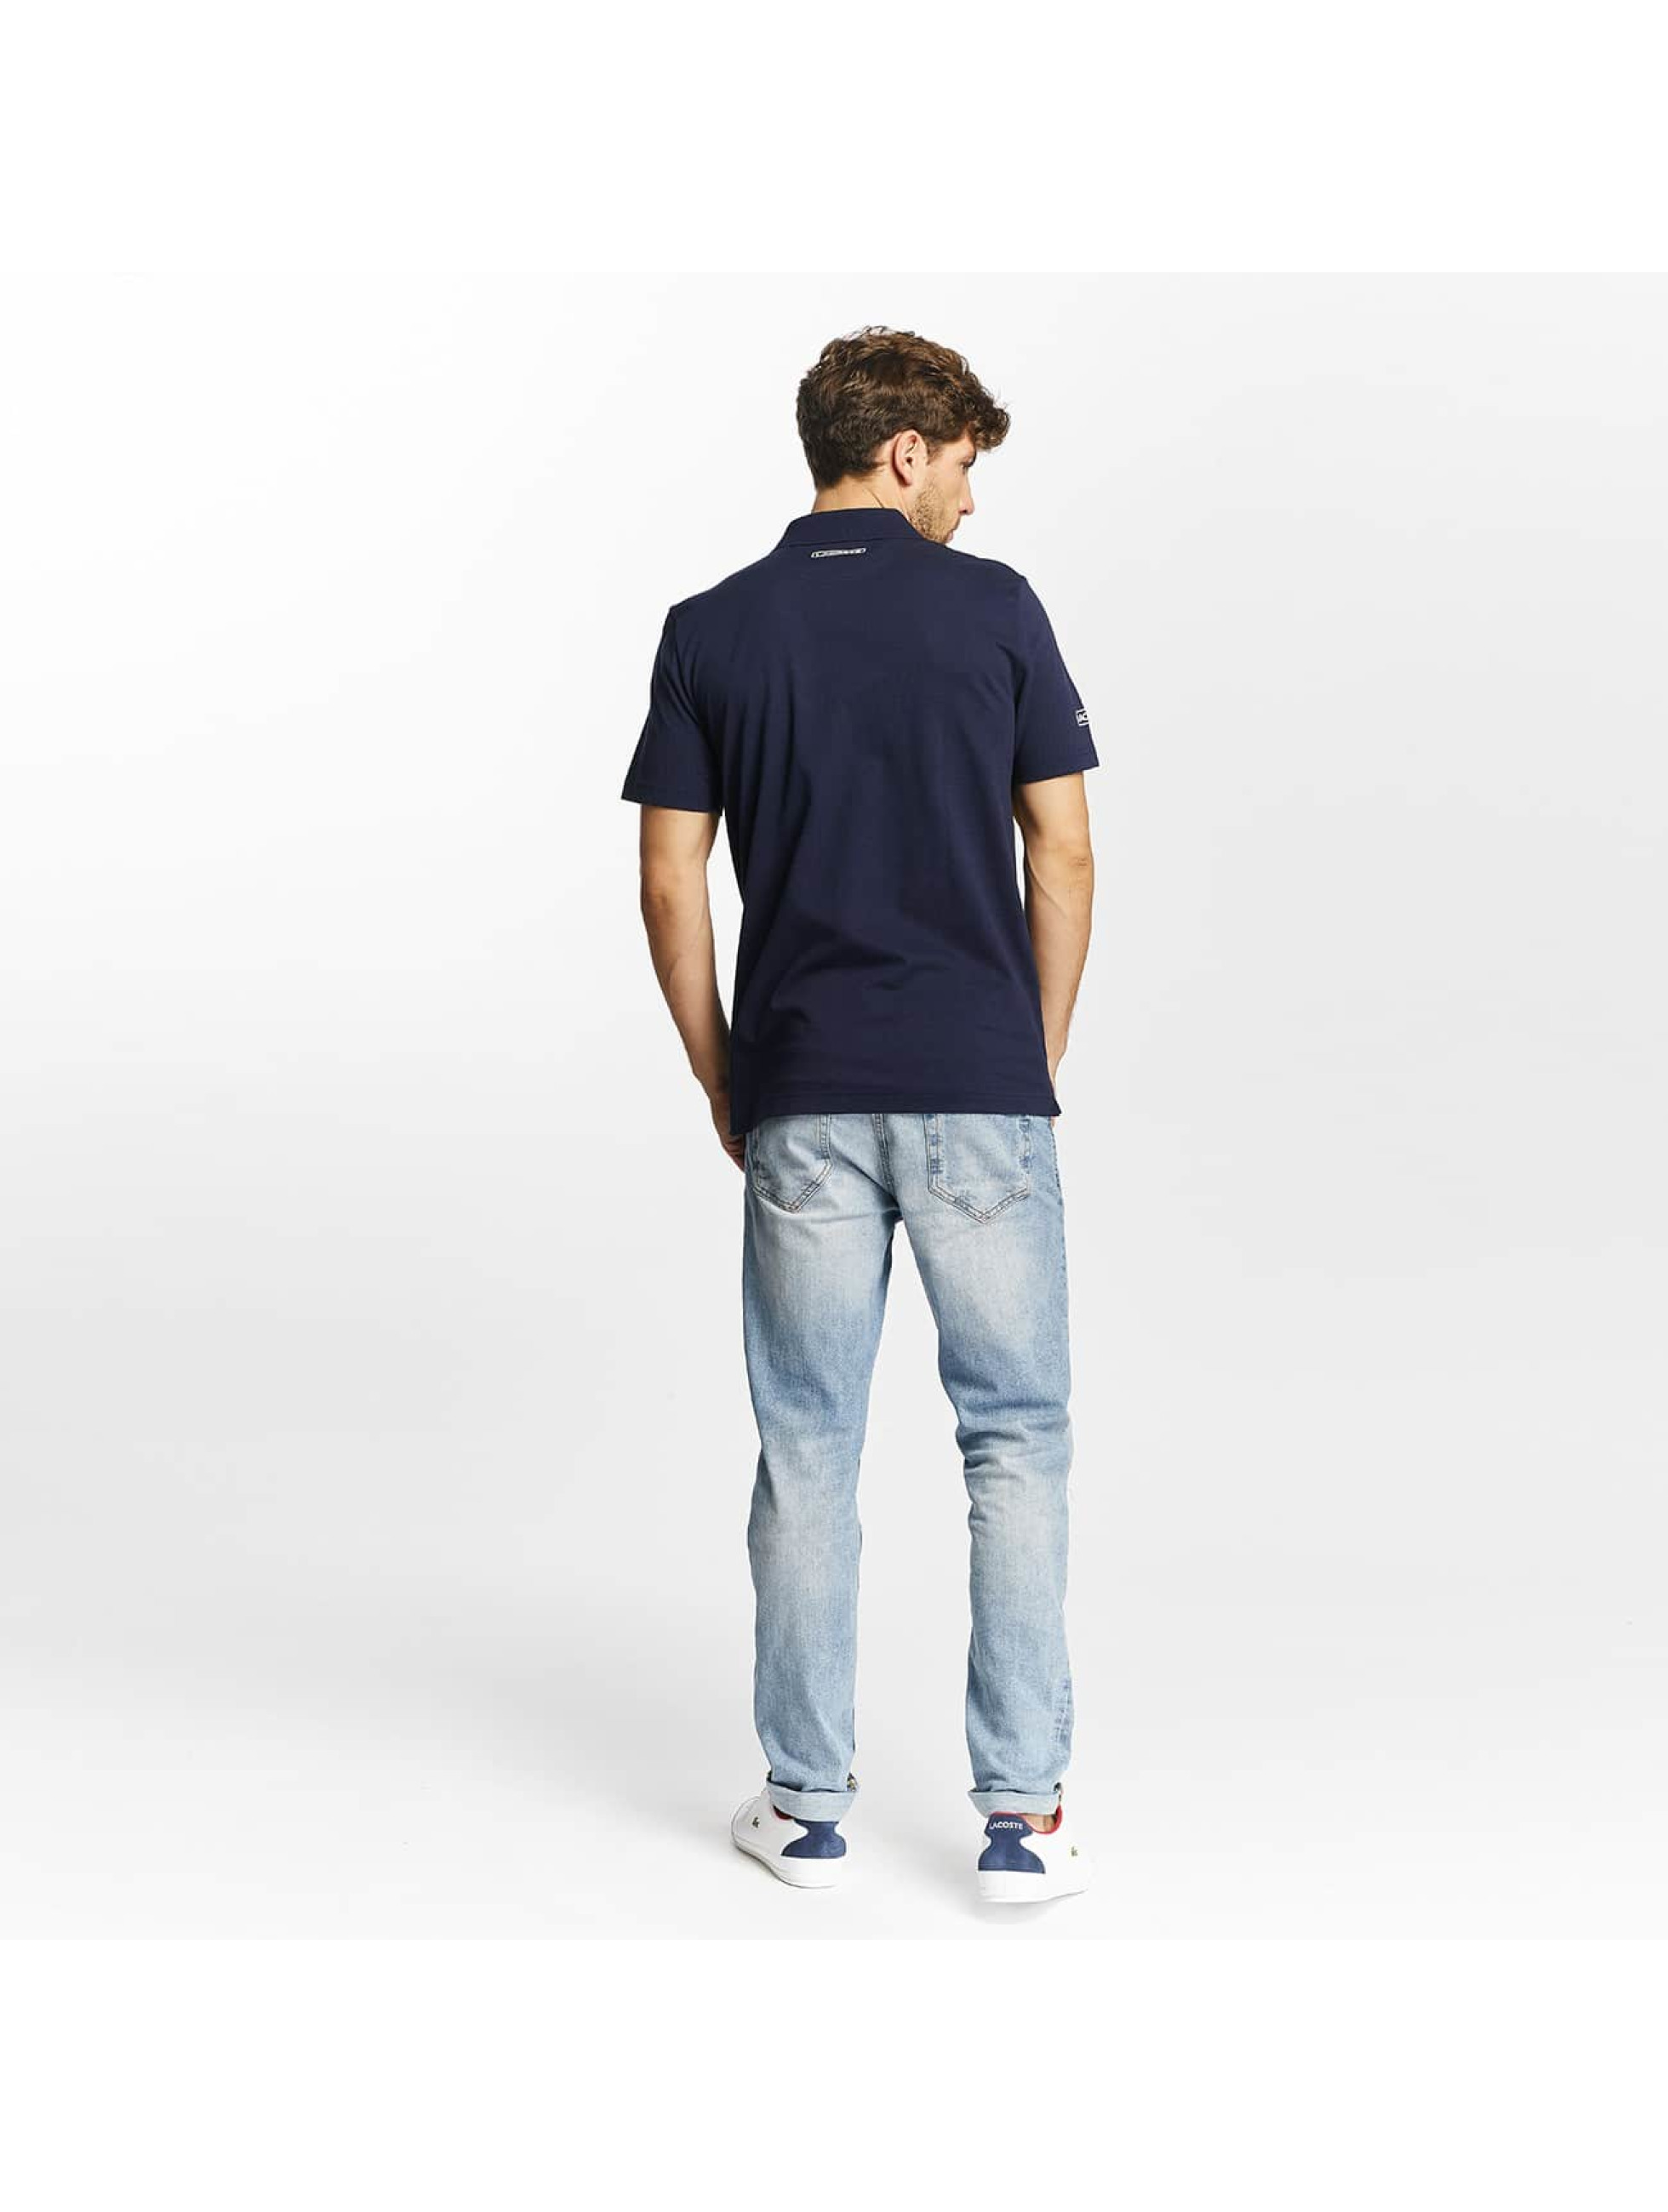 Lacoste Classic Poloshirt SHort Sleeved Ribbed Collar bunt